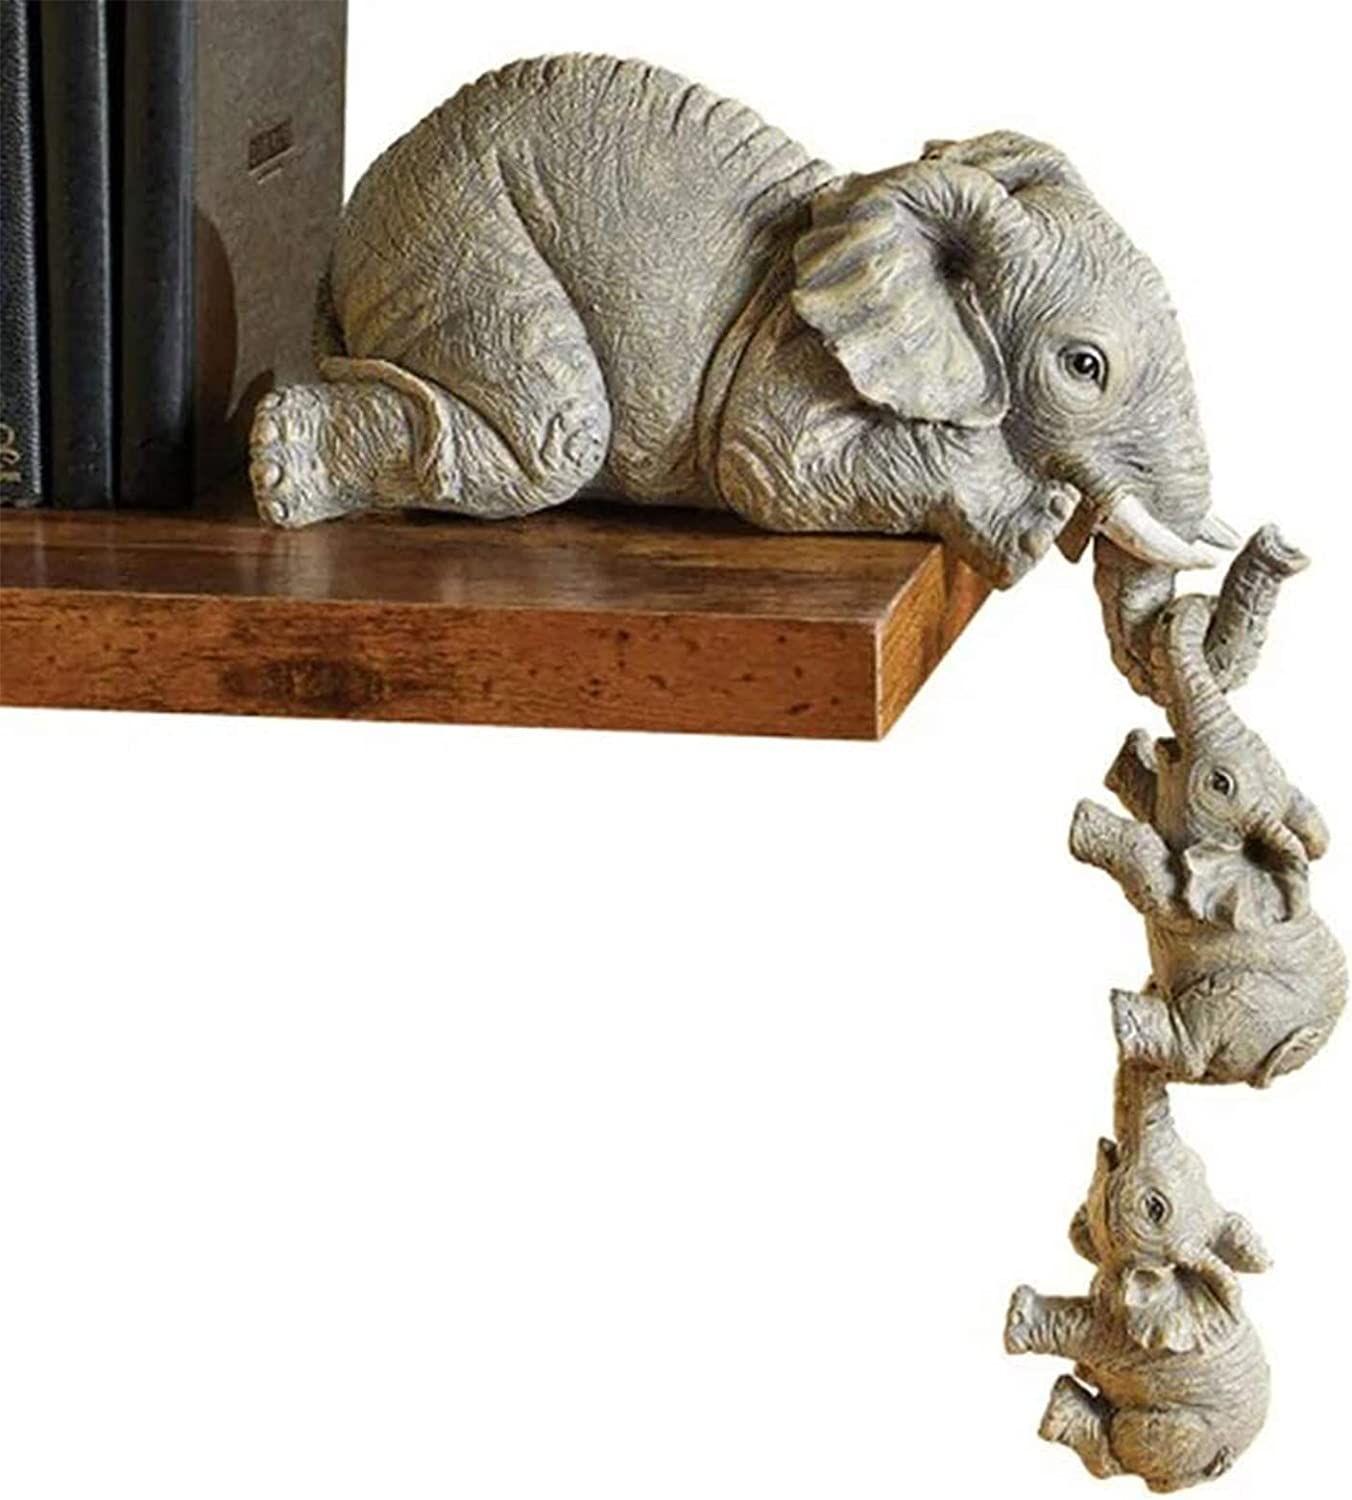 kekafu Gifts 1 Set Maternal Love Resin It is very popular Synthetic Elephant Ornaments Re